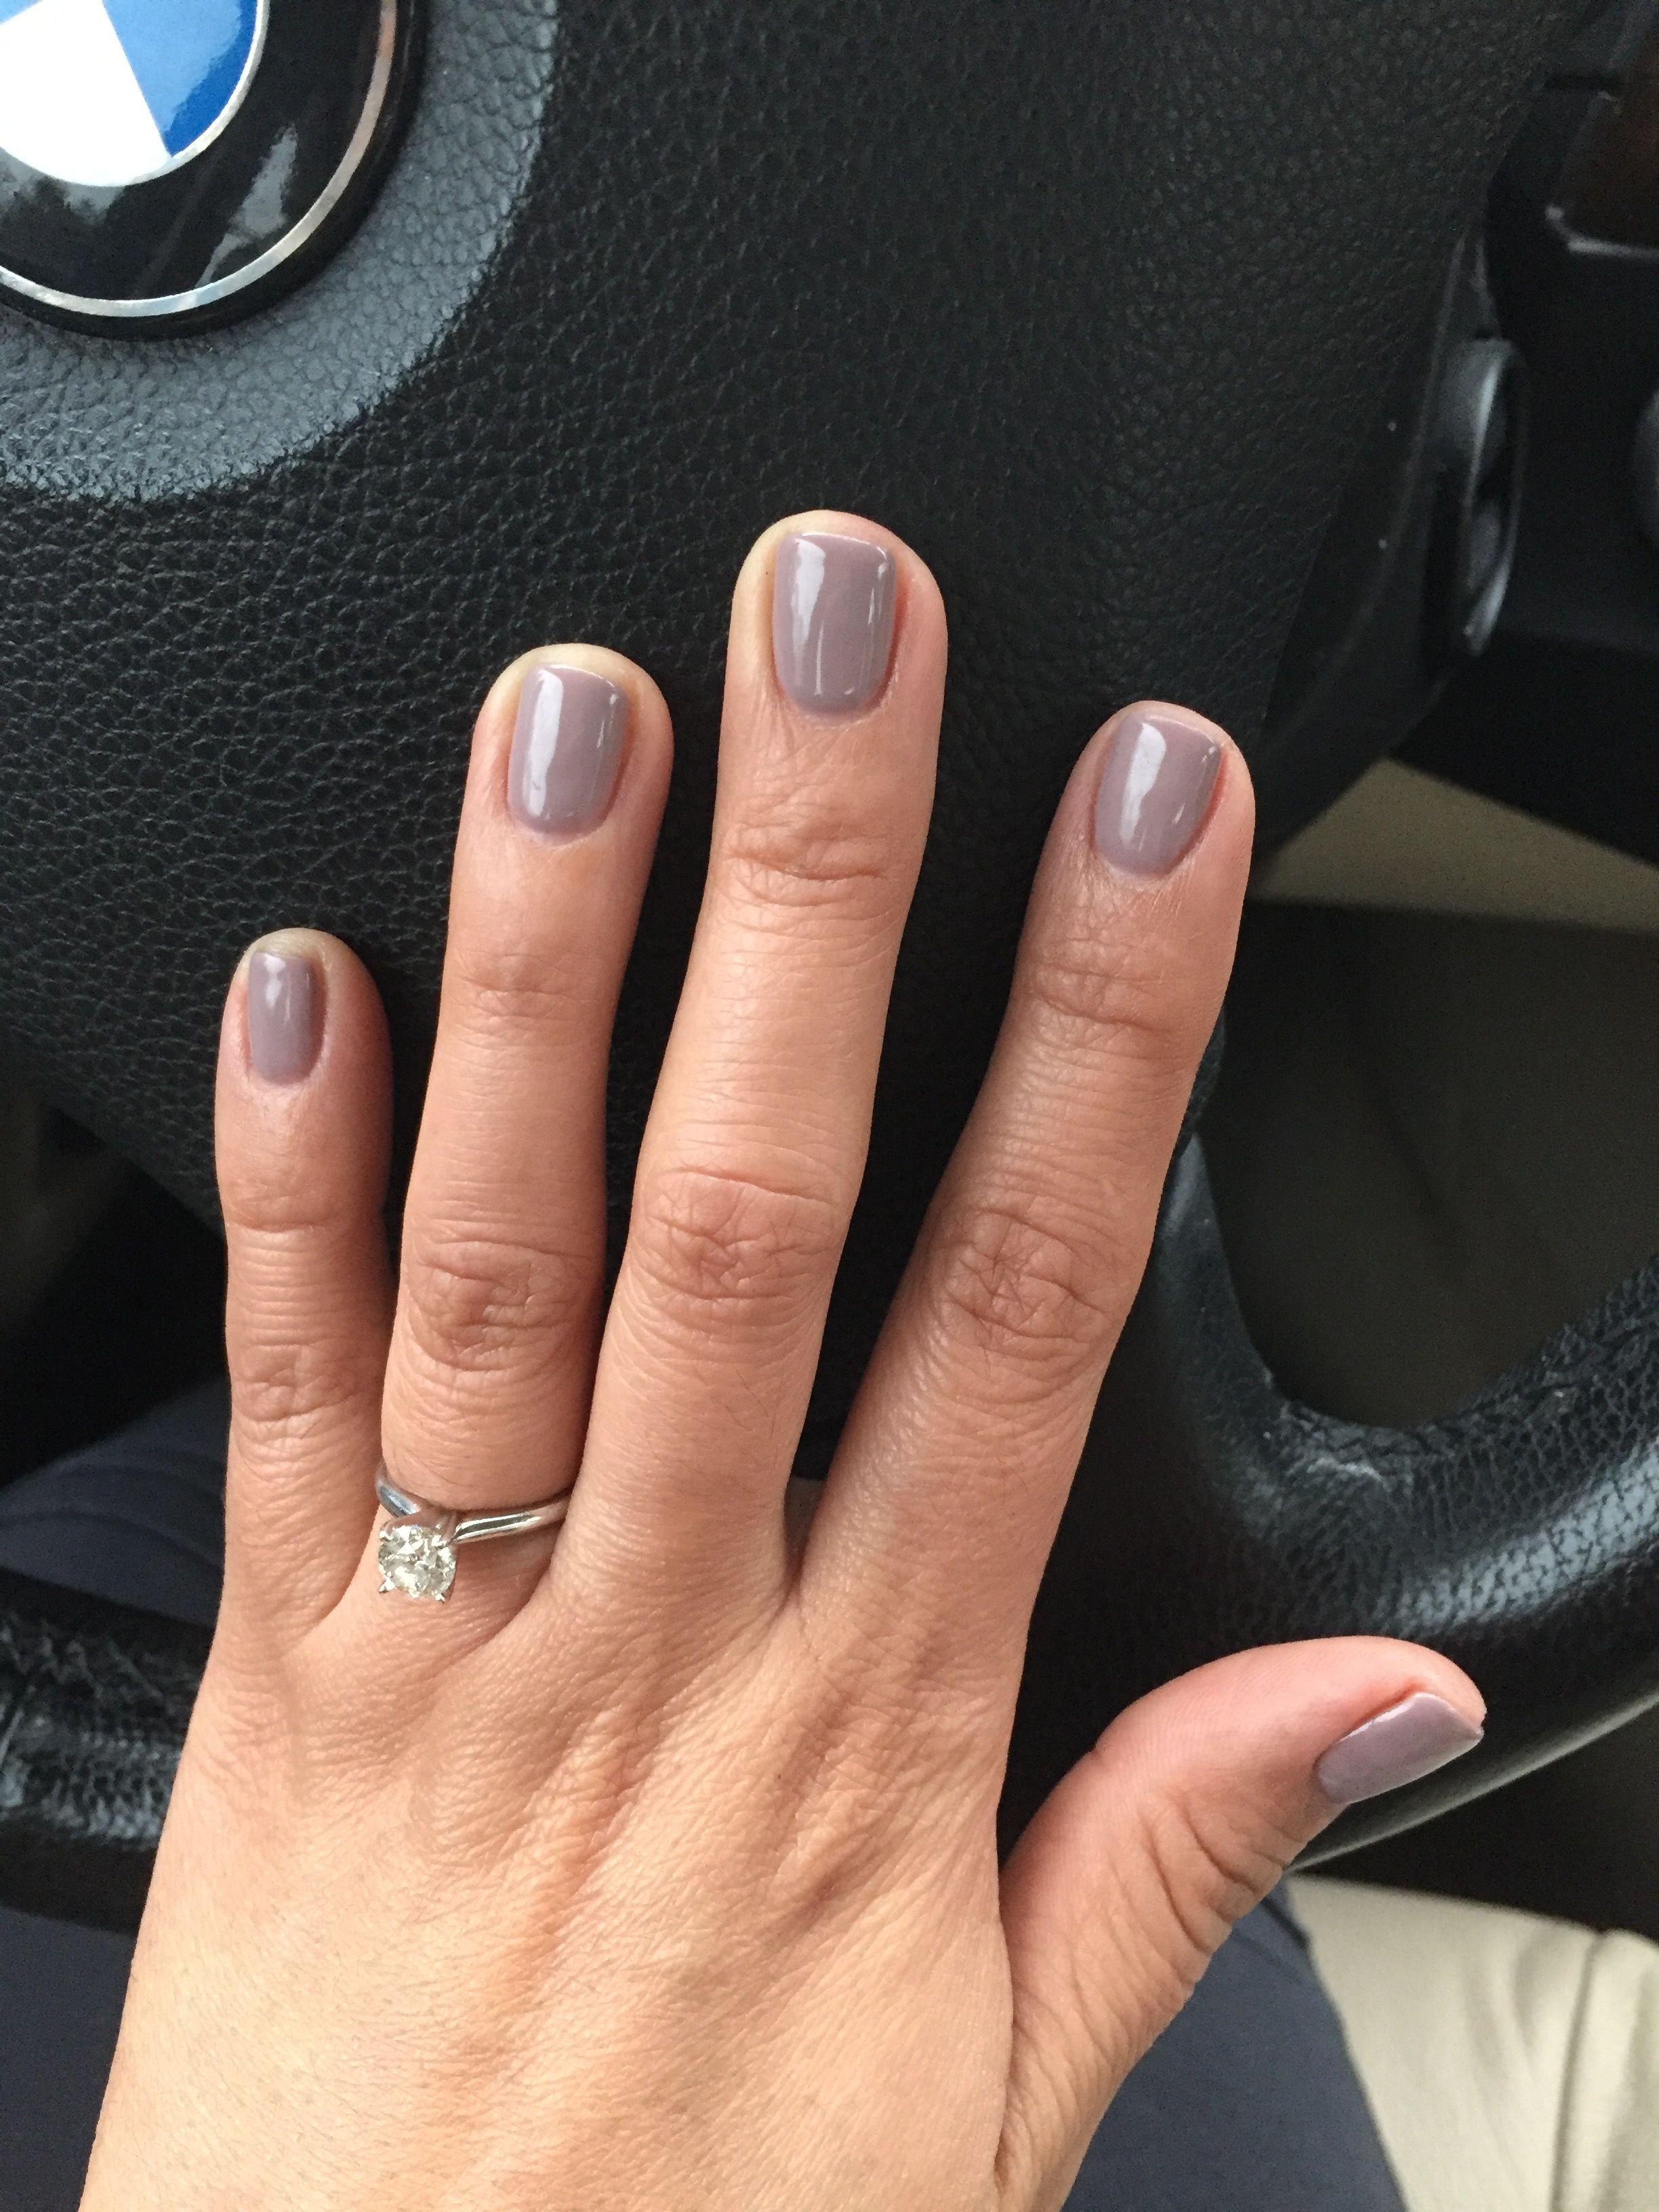 Opi Taupe Less Beach Gel Nail Polish Is Awesome